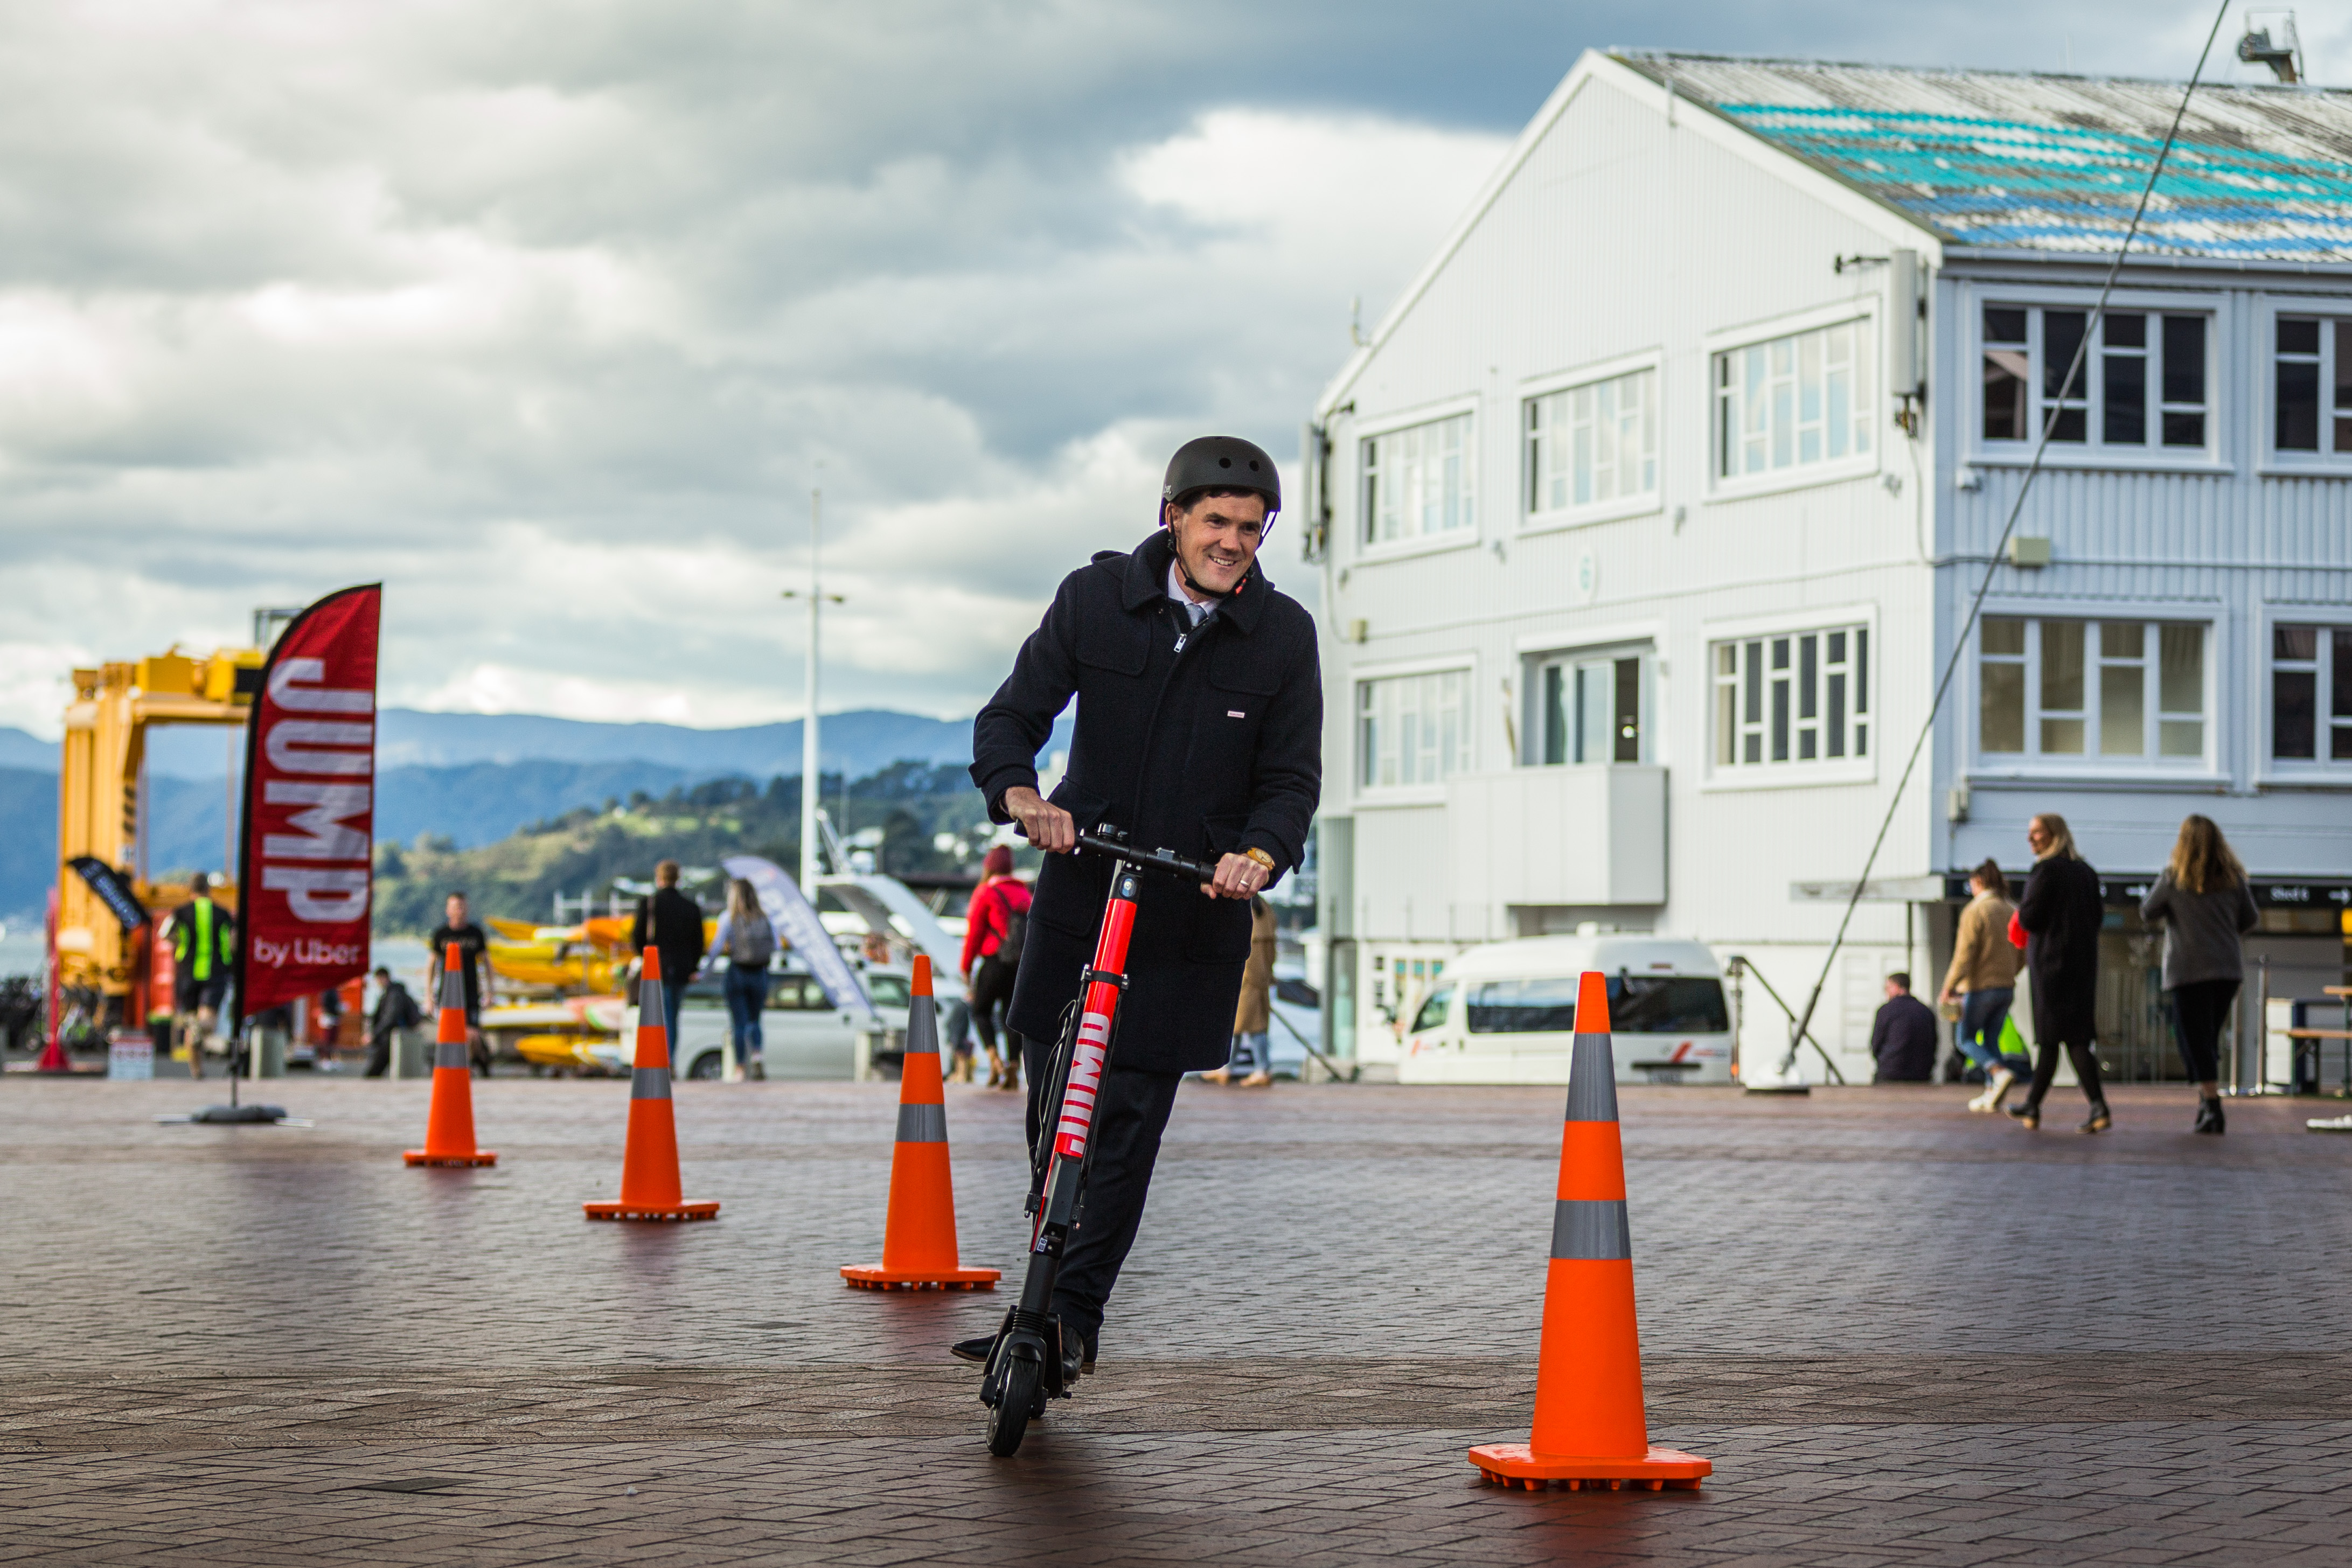 Riding into Wellington: JUMP scooters offer an affordable